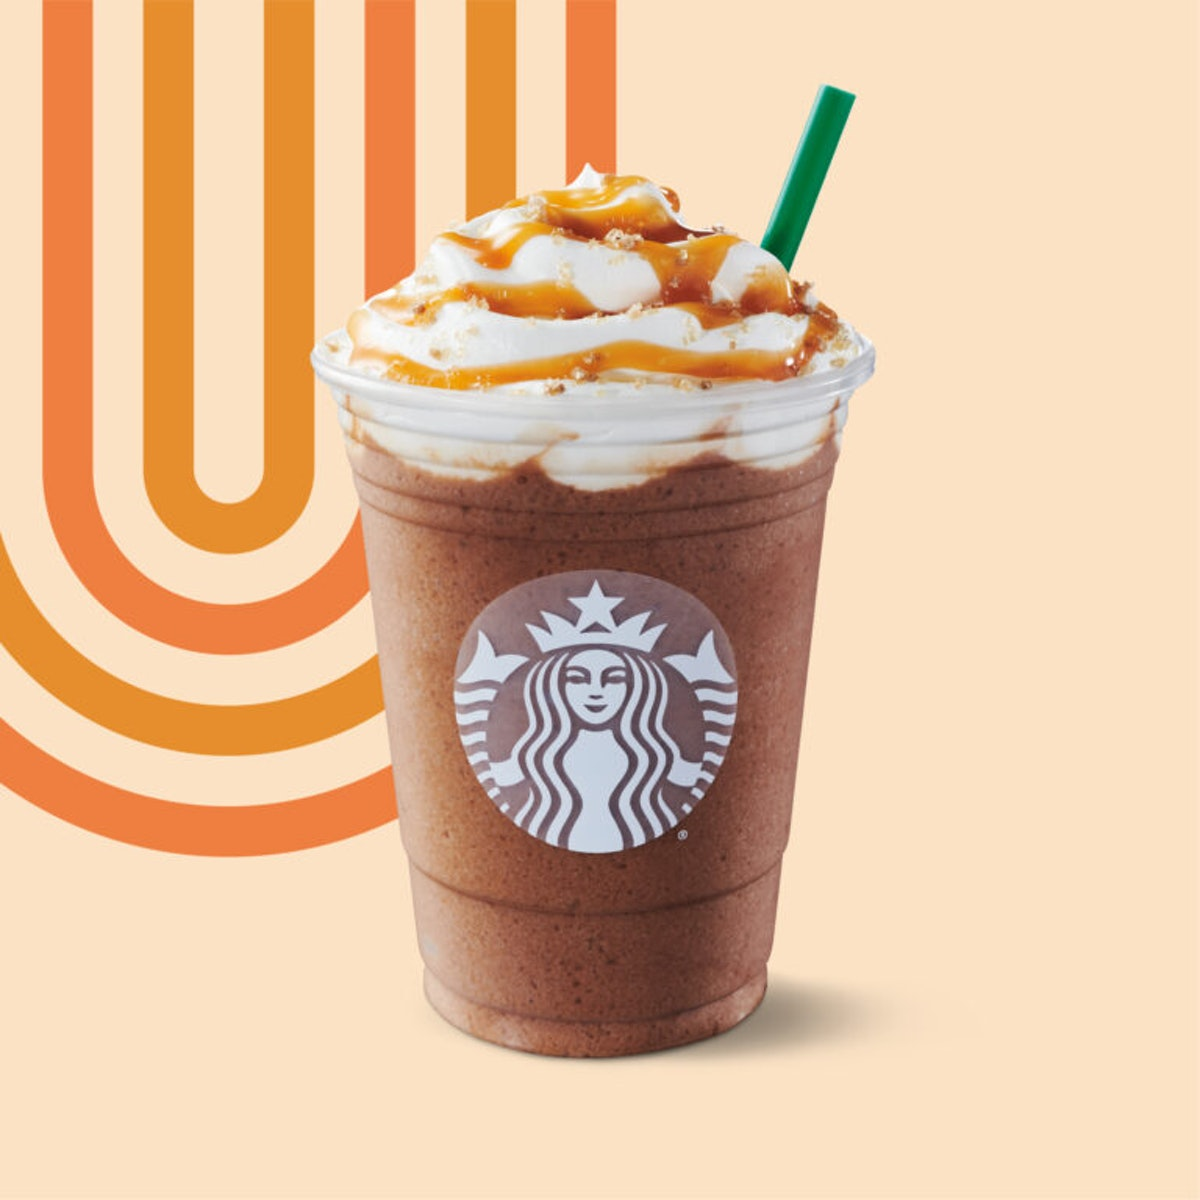 Here are the strongest Starbucks Caramel drinks ranked by caffeine content.